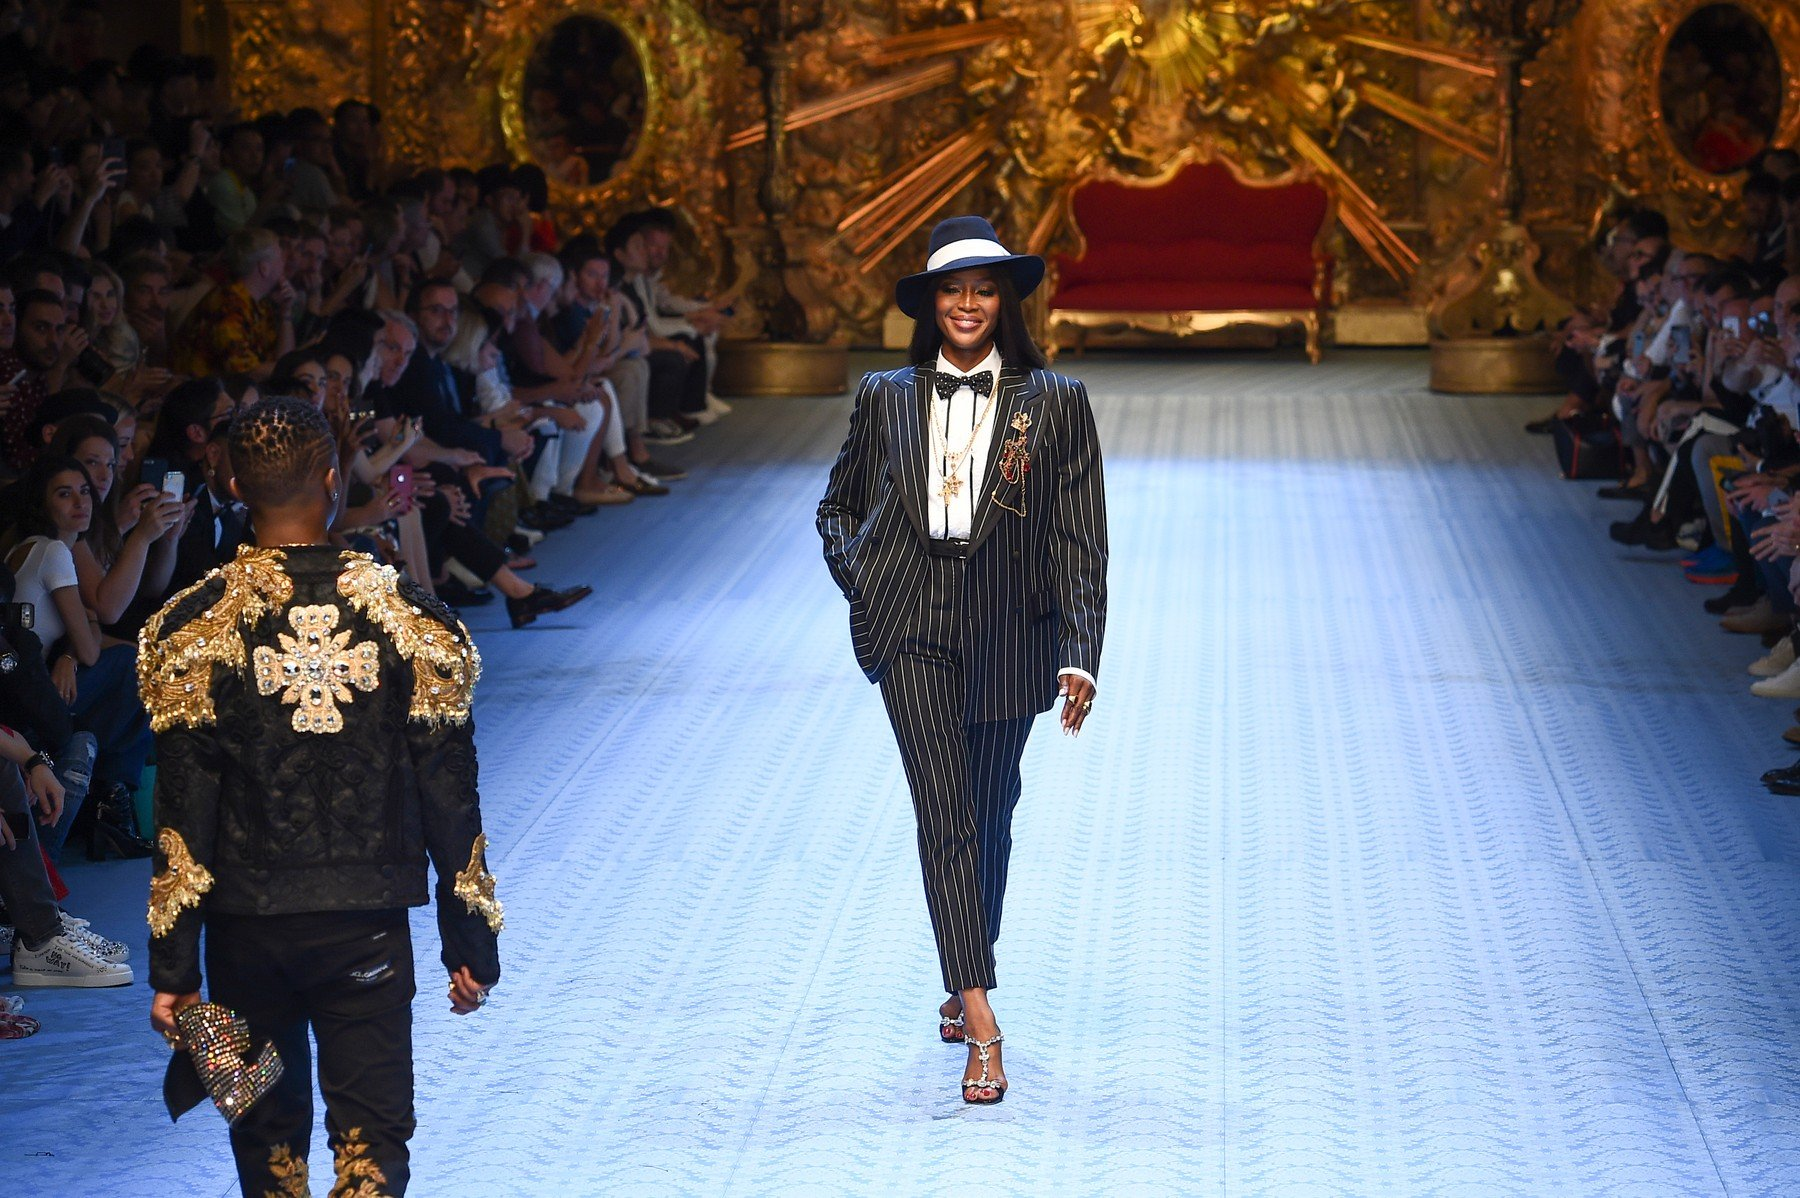 Naomi Campbell  Man Fashion Week SS 19 Dolce&Gabbana Catwalk Milan - Italy 16th june 2018 id  117946_003, Image: 375168142, License: Rights-managed, Restrictions: , Model Release: no, Credit line: Profimedia, SGP